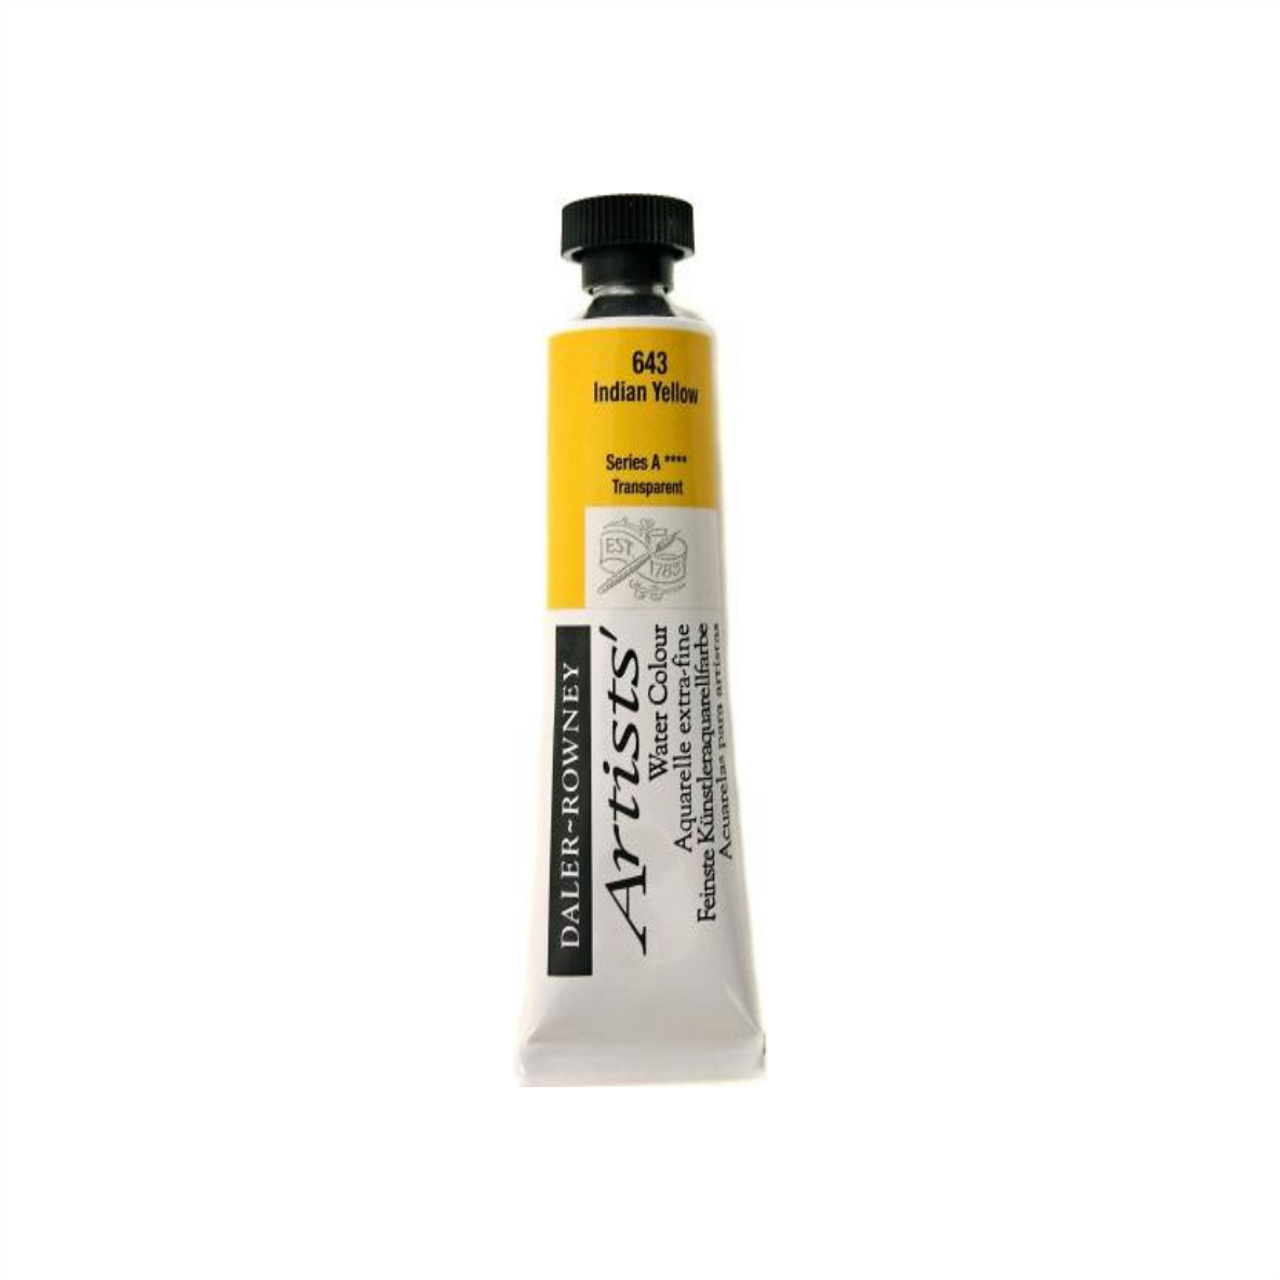 Daler-Rowney Artists' Watercolour Tube 15ml - Indian Yellow #643